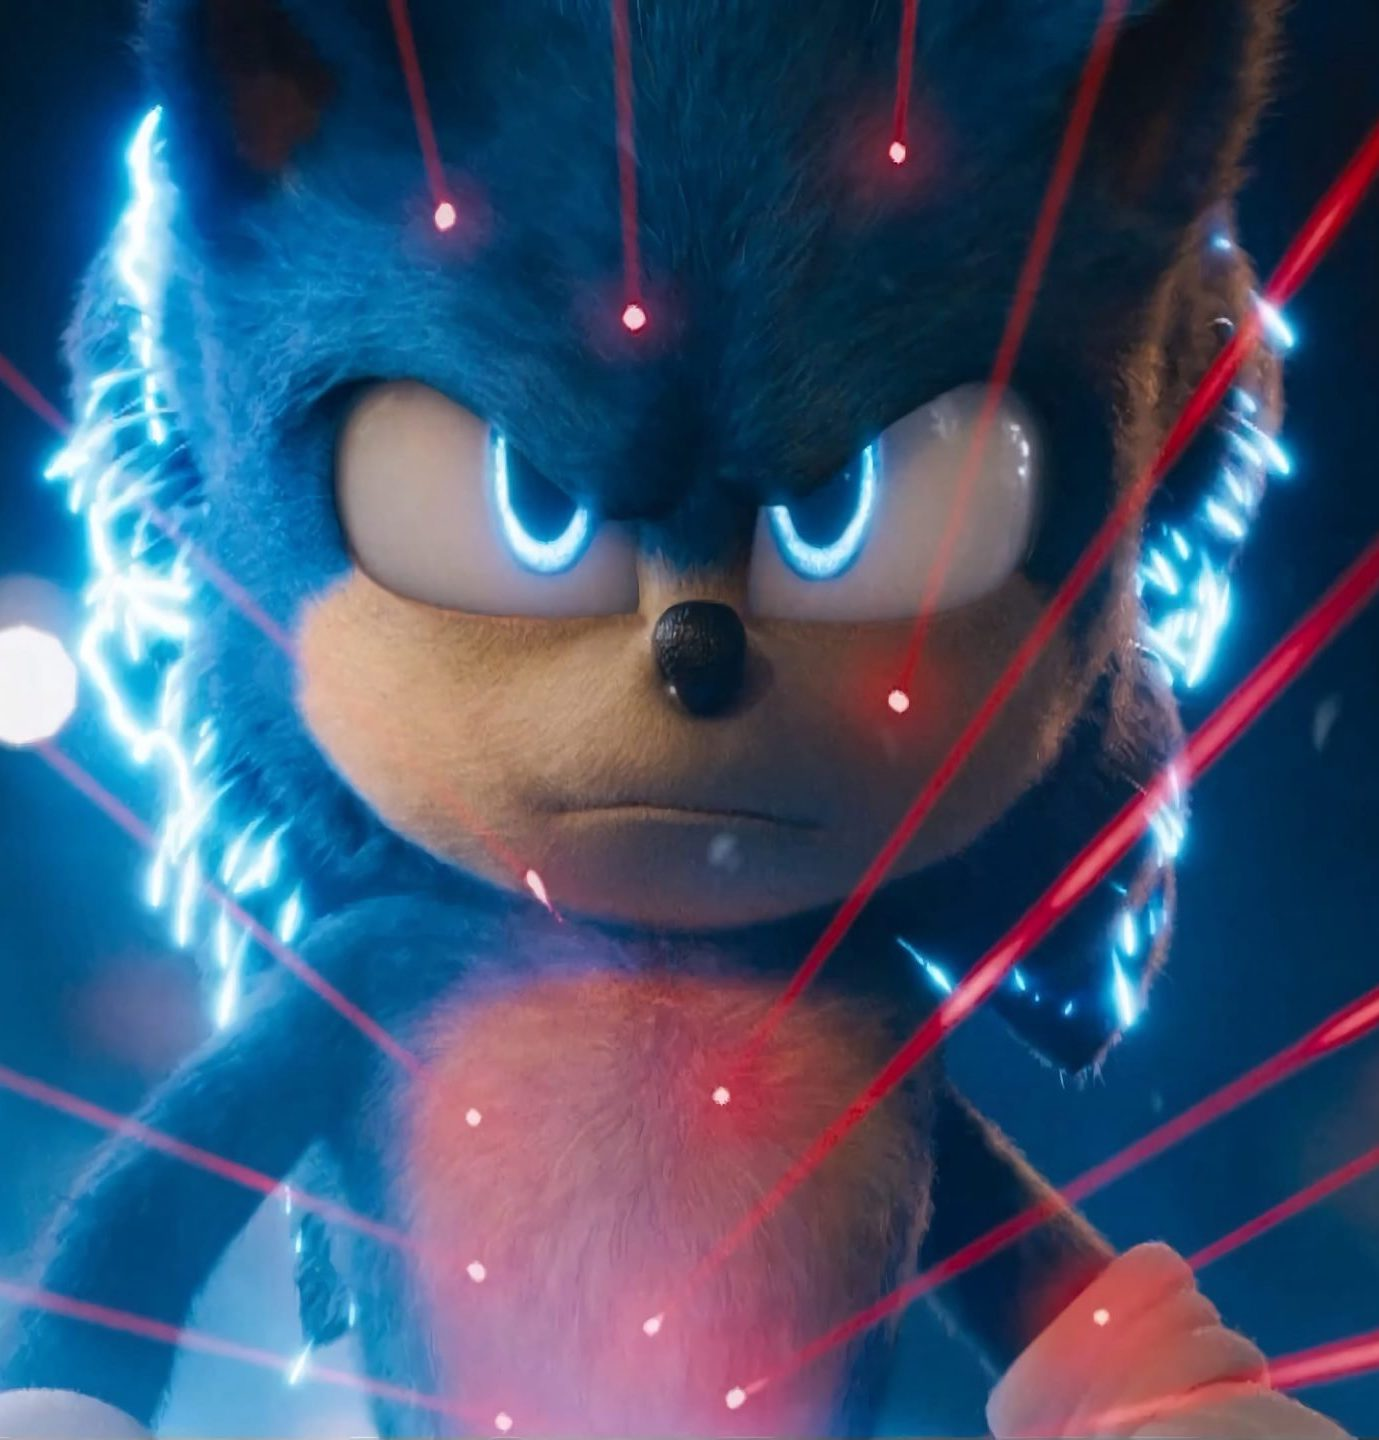 1 JfI aYVYD16JbzHUNduZHg scaled 1 10 Things The Sonic Movie Gets Wrong About The Games - And 10 Things It Gets Right